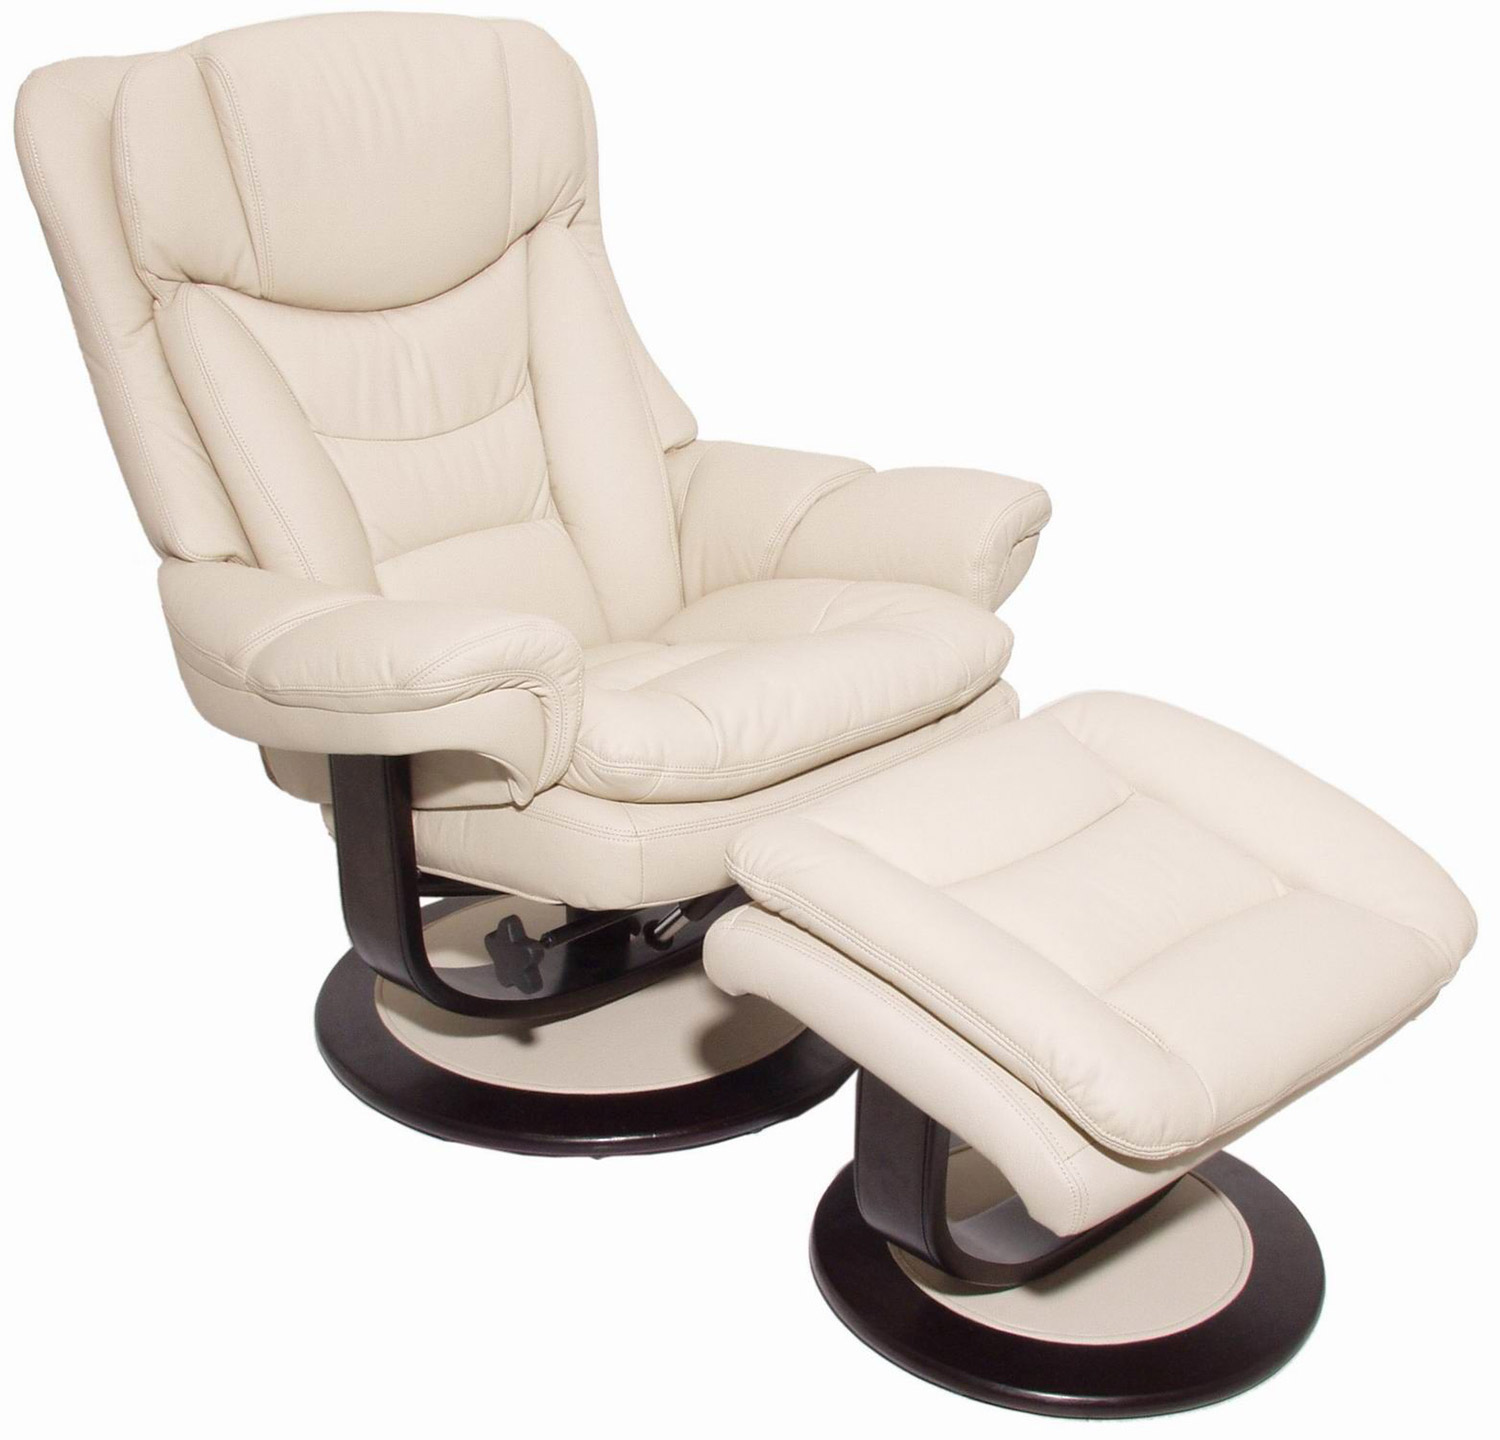 Barcalounger Roscoe Pedestal Recliner Chair and Ottoman - Frampton Ivory/Leather Match